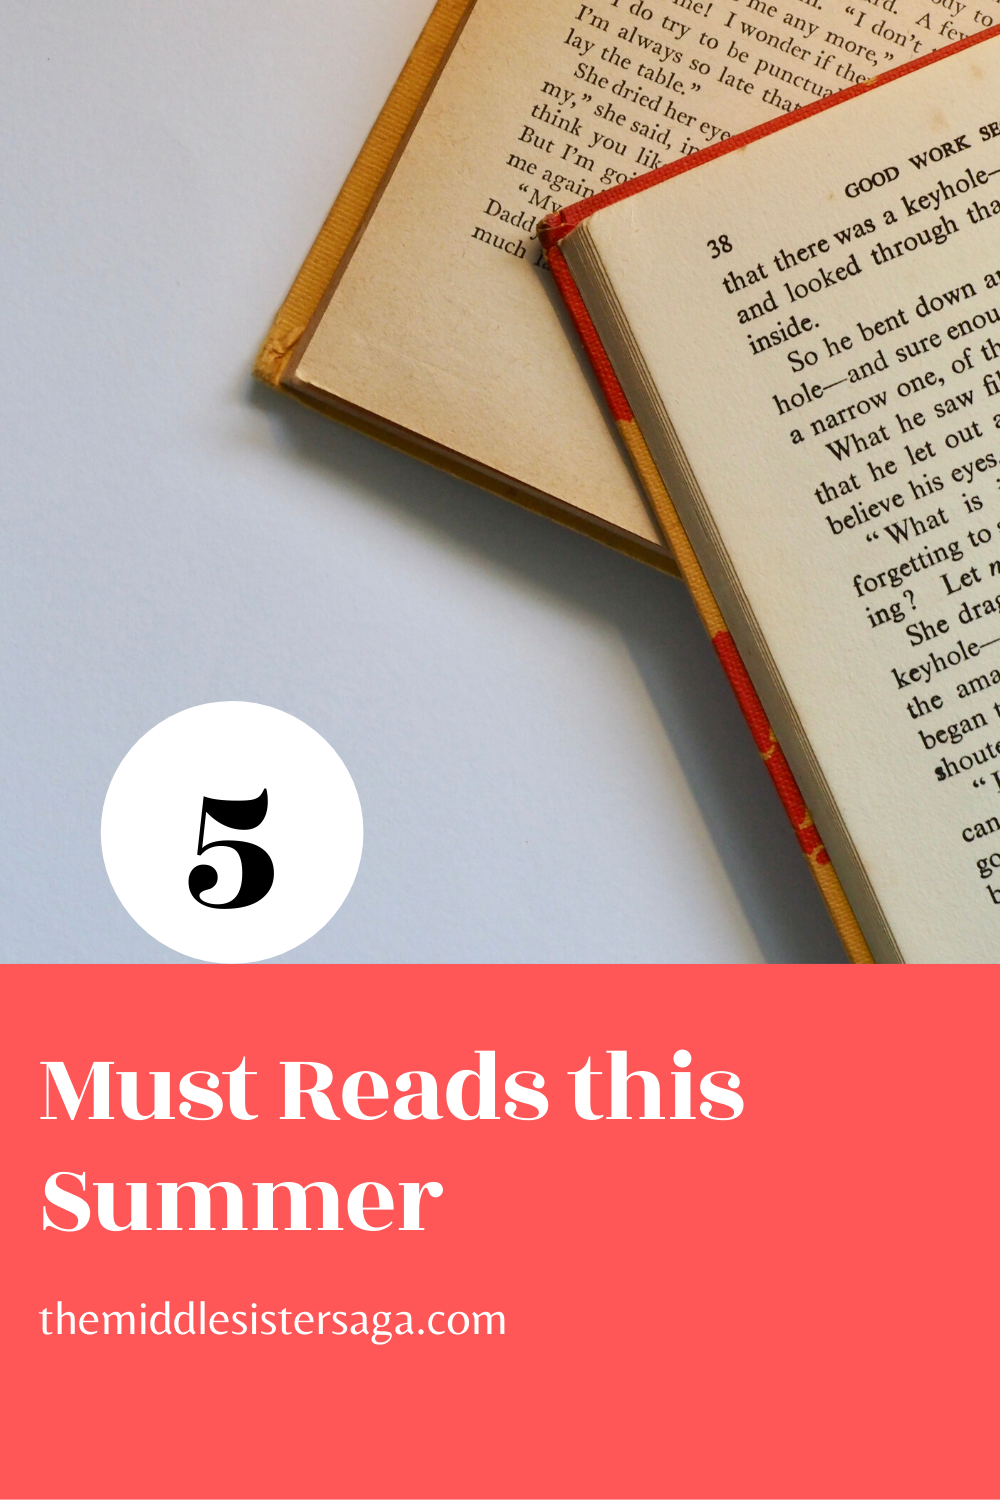 Since it's now officially summer (and also since many of us are still social distancing), I felt it was time to pull together a list of must-reads. These are some of my FAVORITES of all-time–not just new releases. #summerreading #booklist #readinglist #books #harrypotter #ruthware